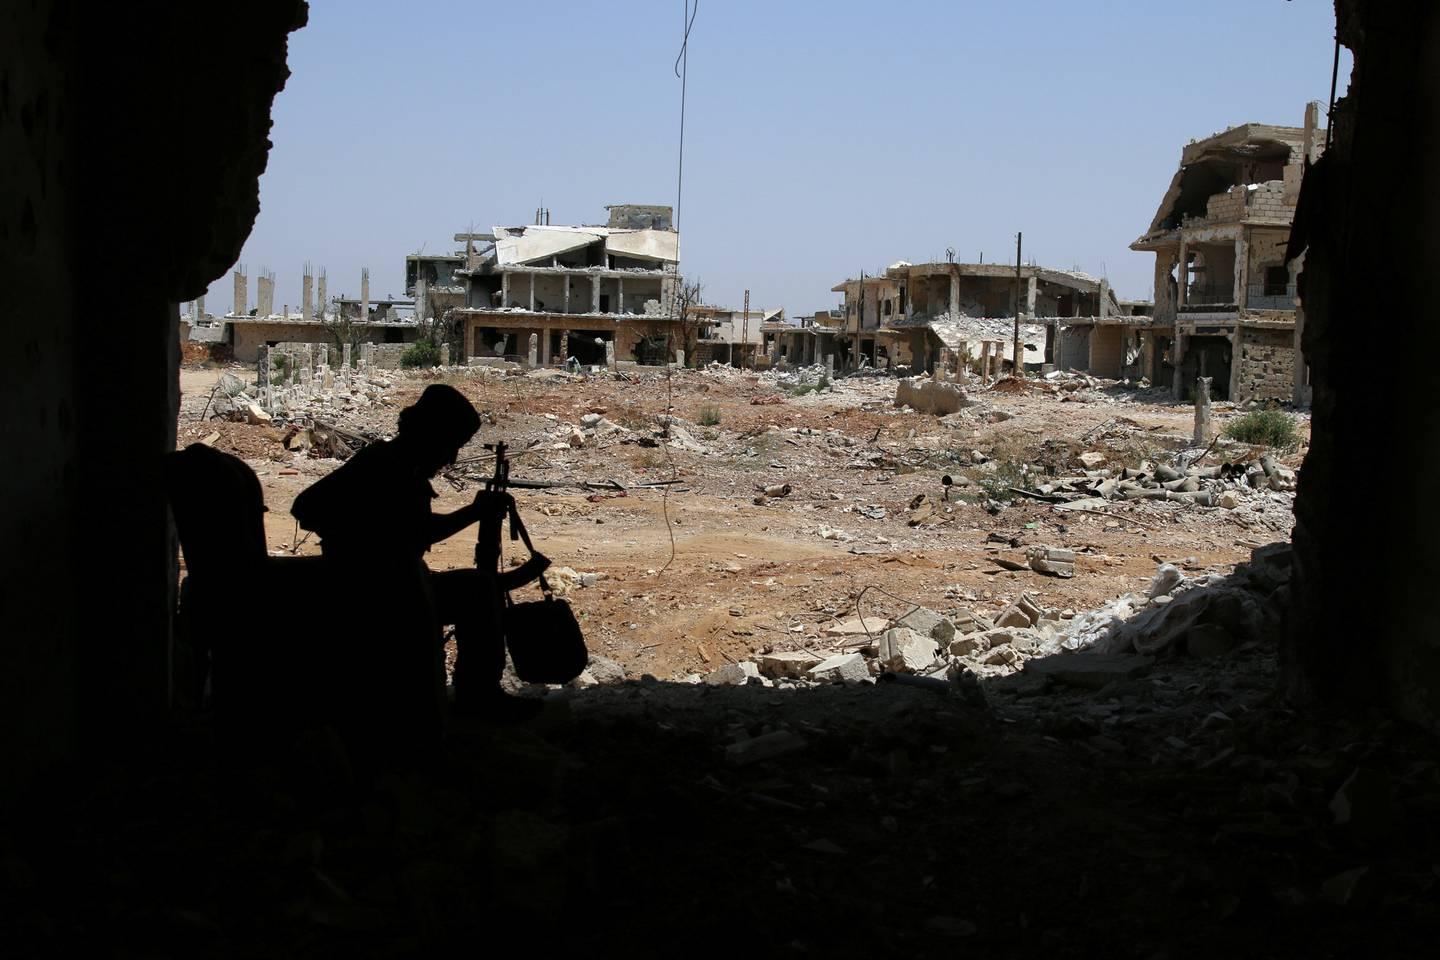 A Free Syrian Army fighter sits with his weapon in al-Manshiyeh neighbourhood in Deraa, Syria July 21, 2017. REUTERS/Alaa Al-Faqir